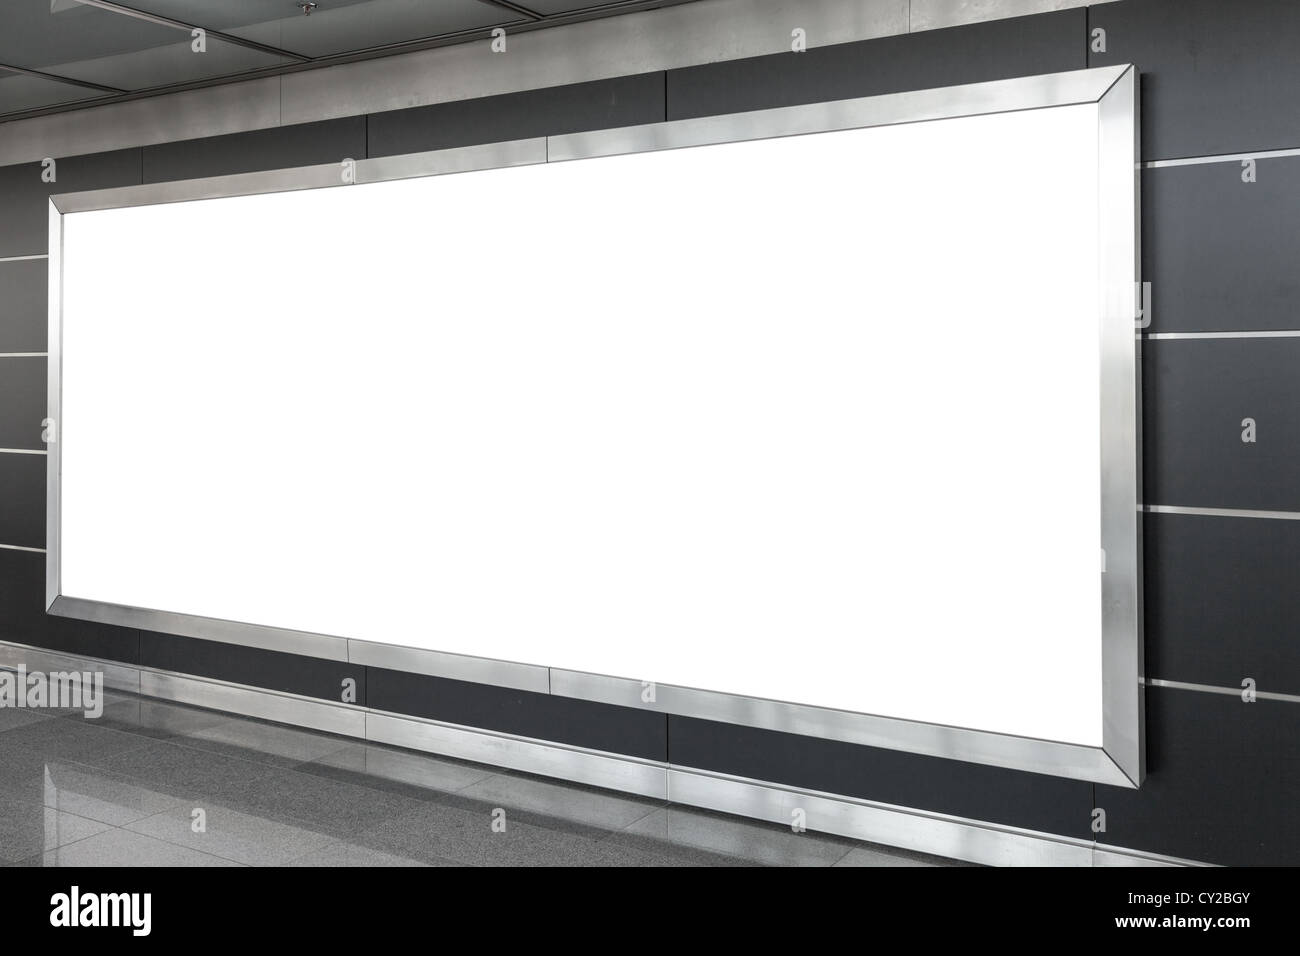 Blank billboard in modern interior hall - Stock Image